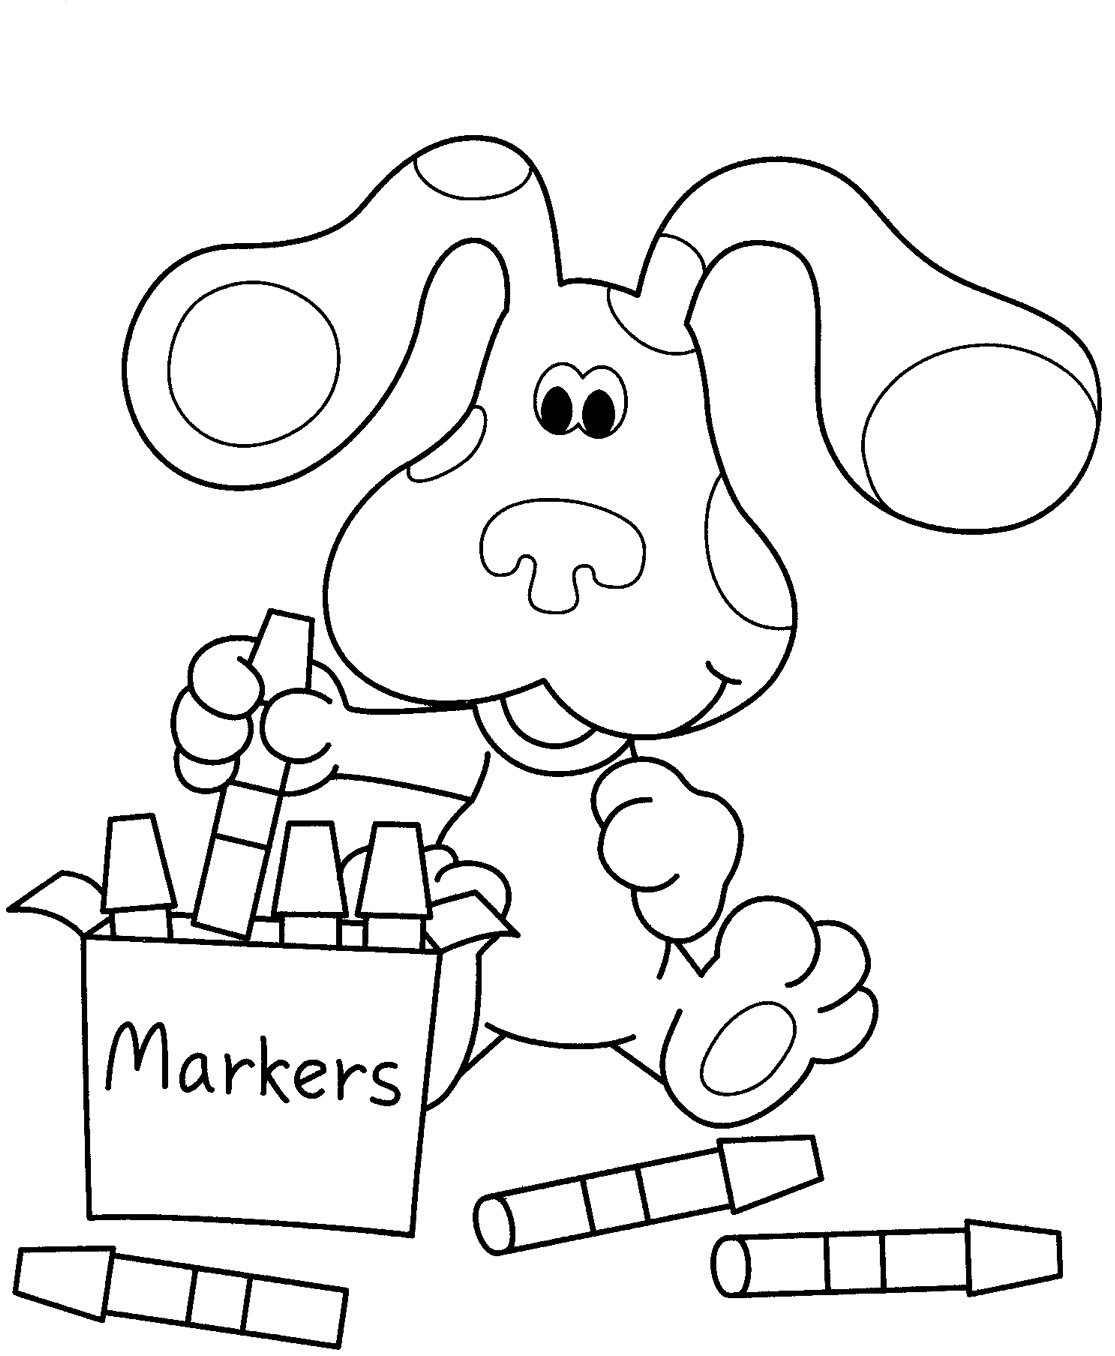 Princess Coloring Pages Best Coloring Pages For Kids My Blog